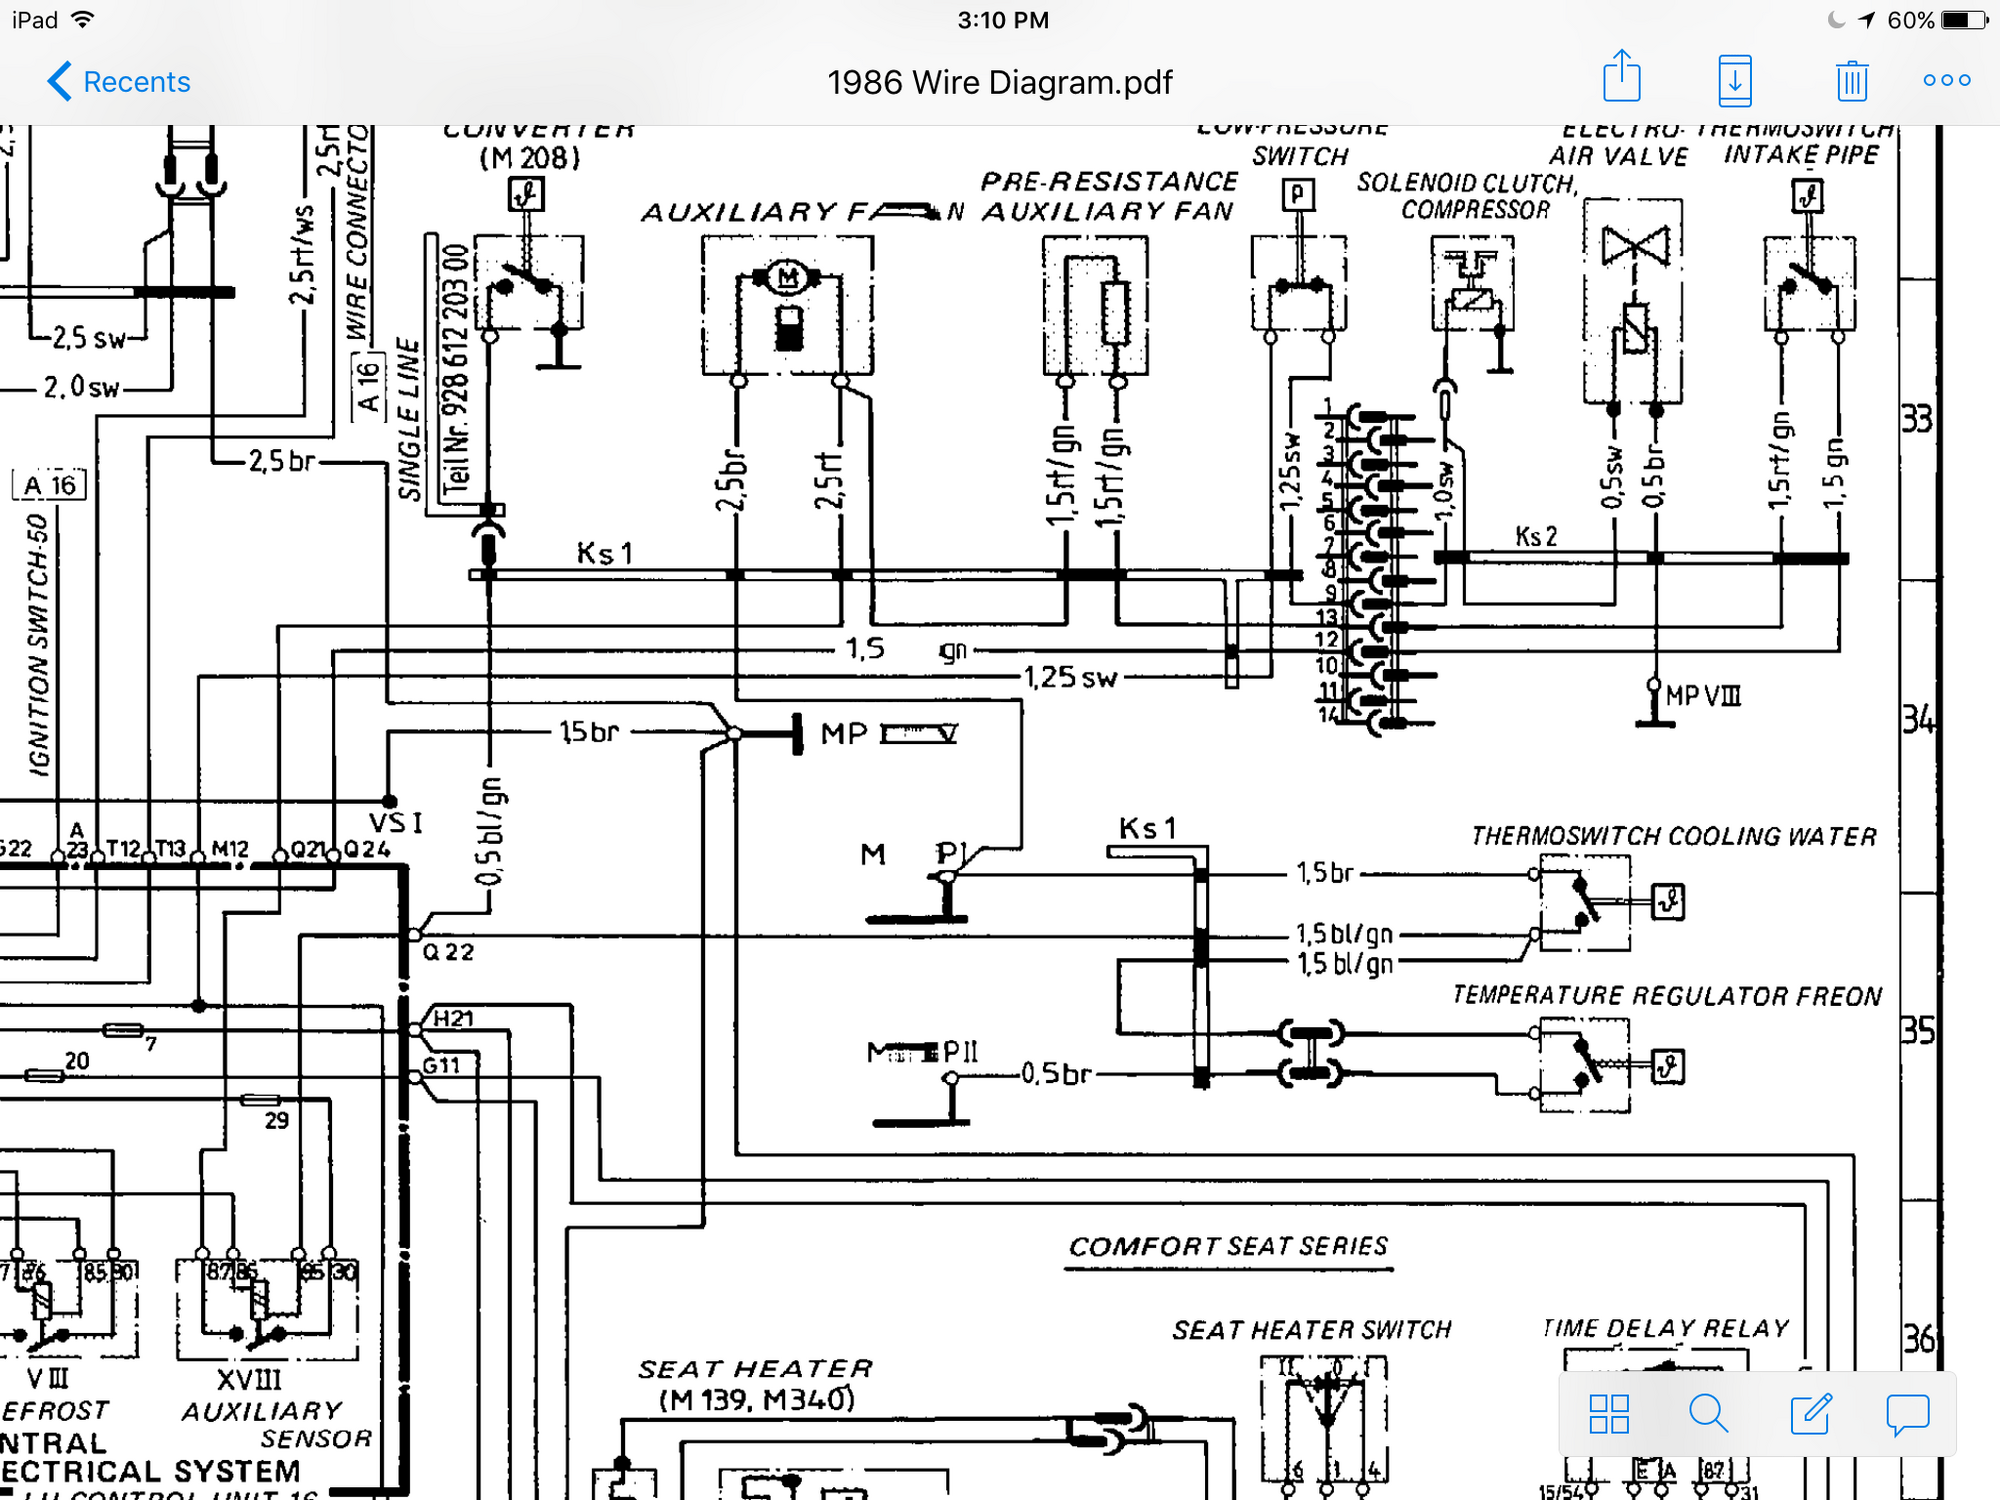 Troubleshooting A 86 5 Auxiliary Fan